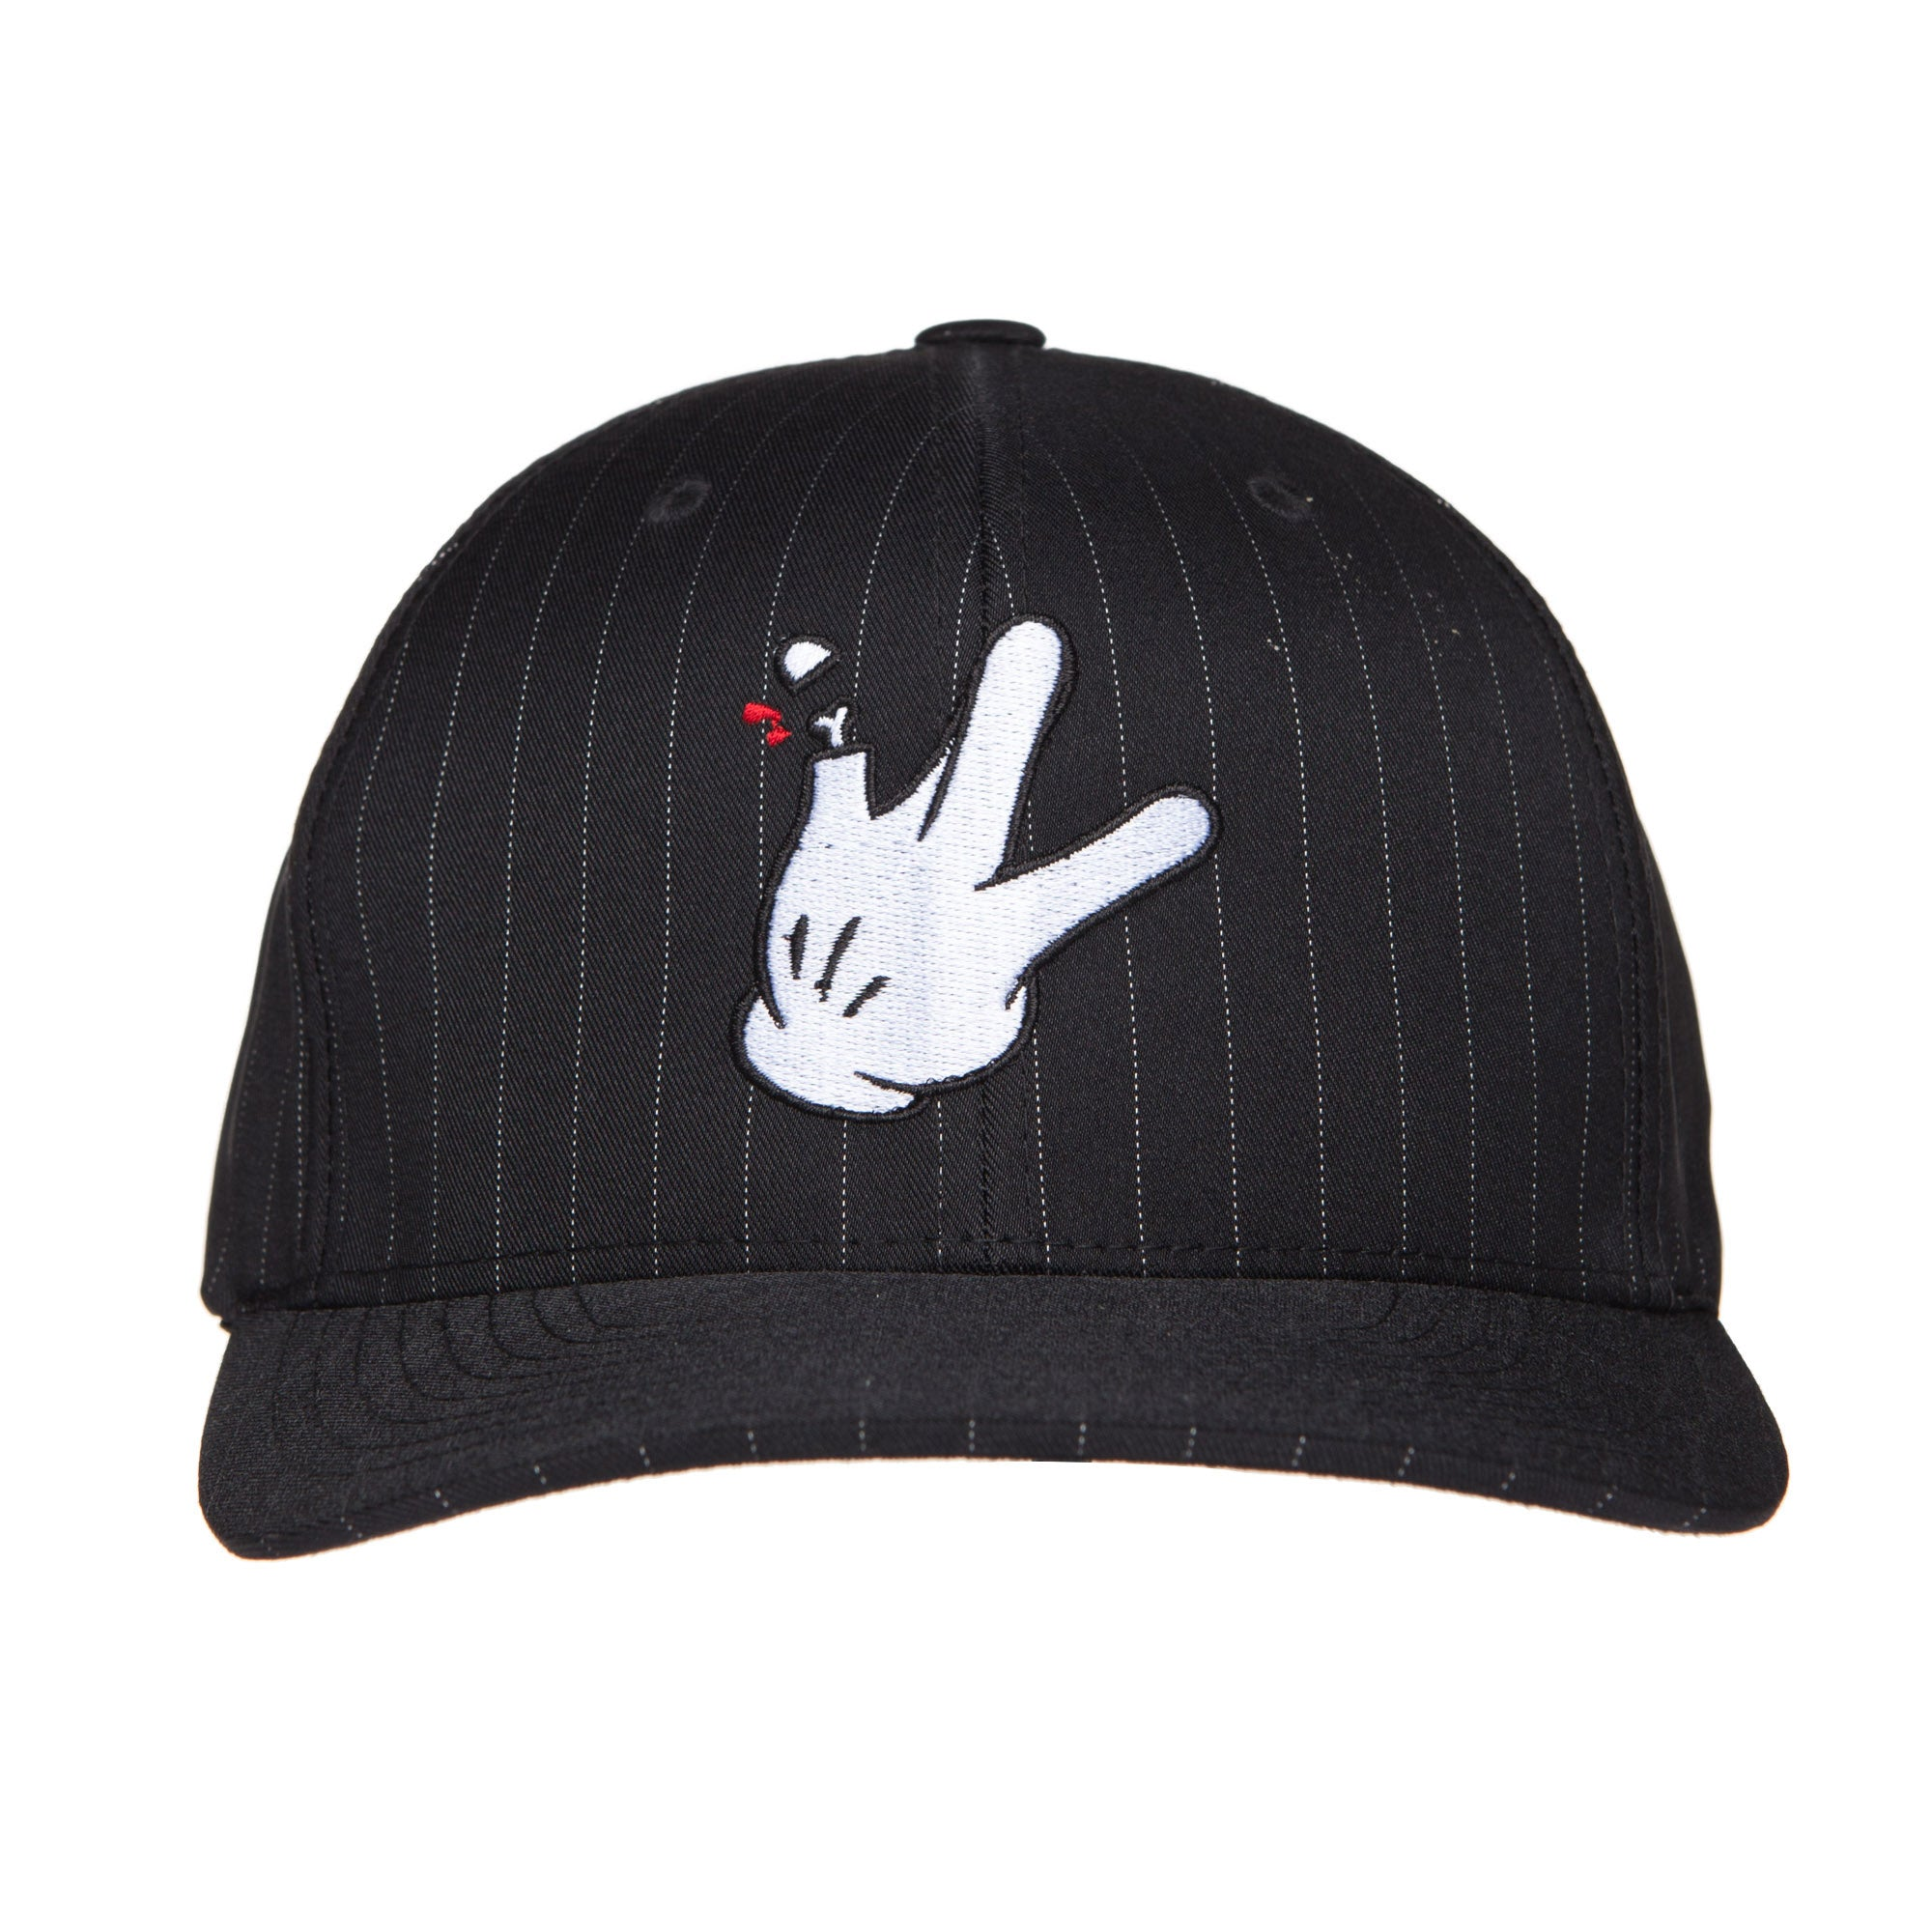 "Flexfit Black Pinstripe RaceKraft ""Glove"" SnapBack Hat"